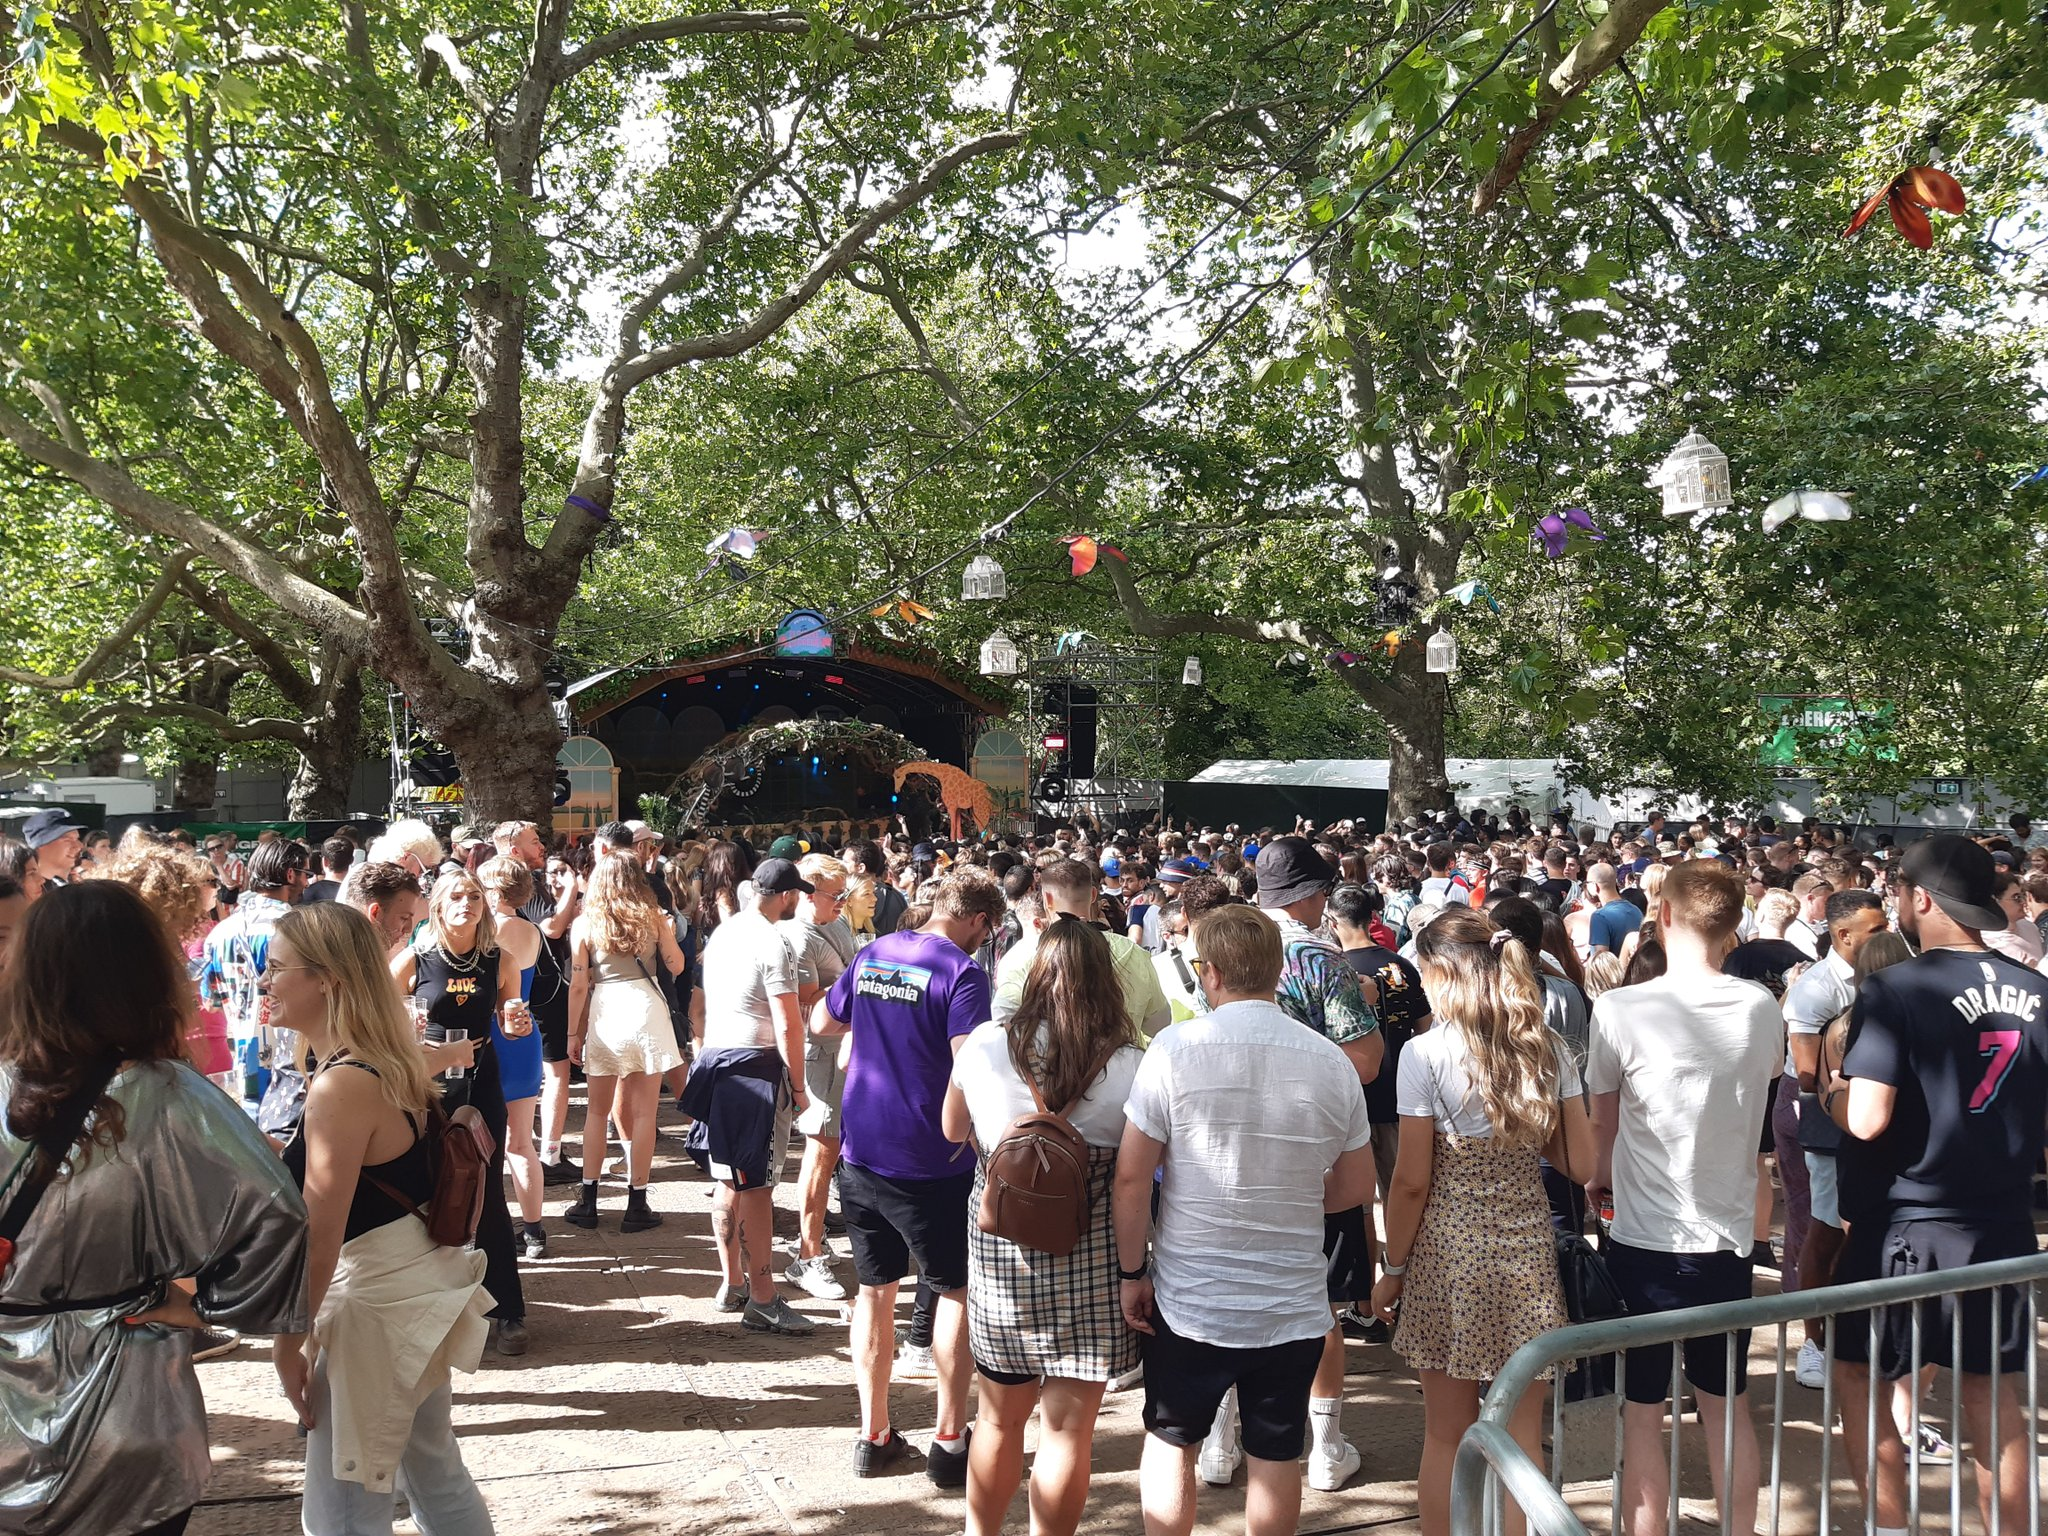 Music festivals are back in London's parks. But has anything changed?